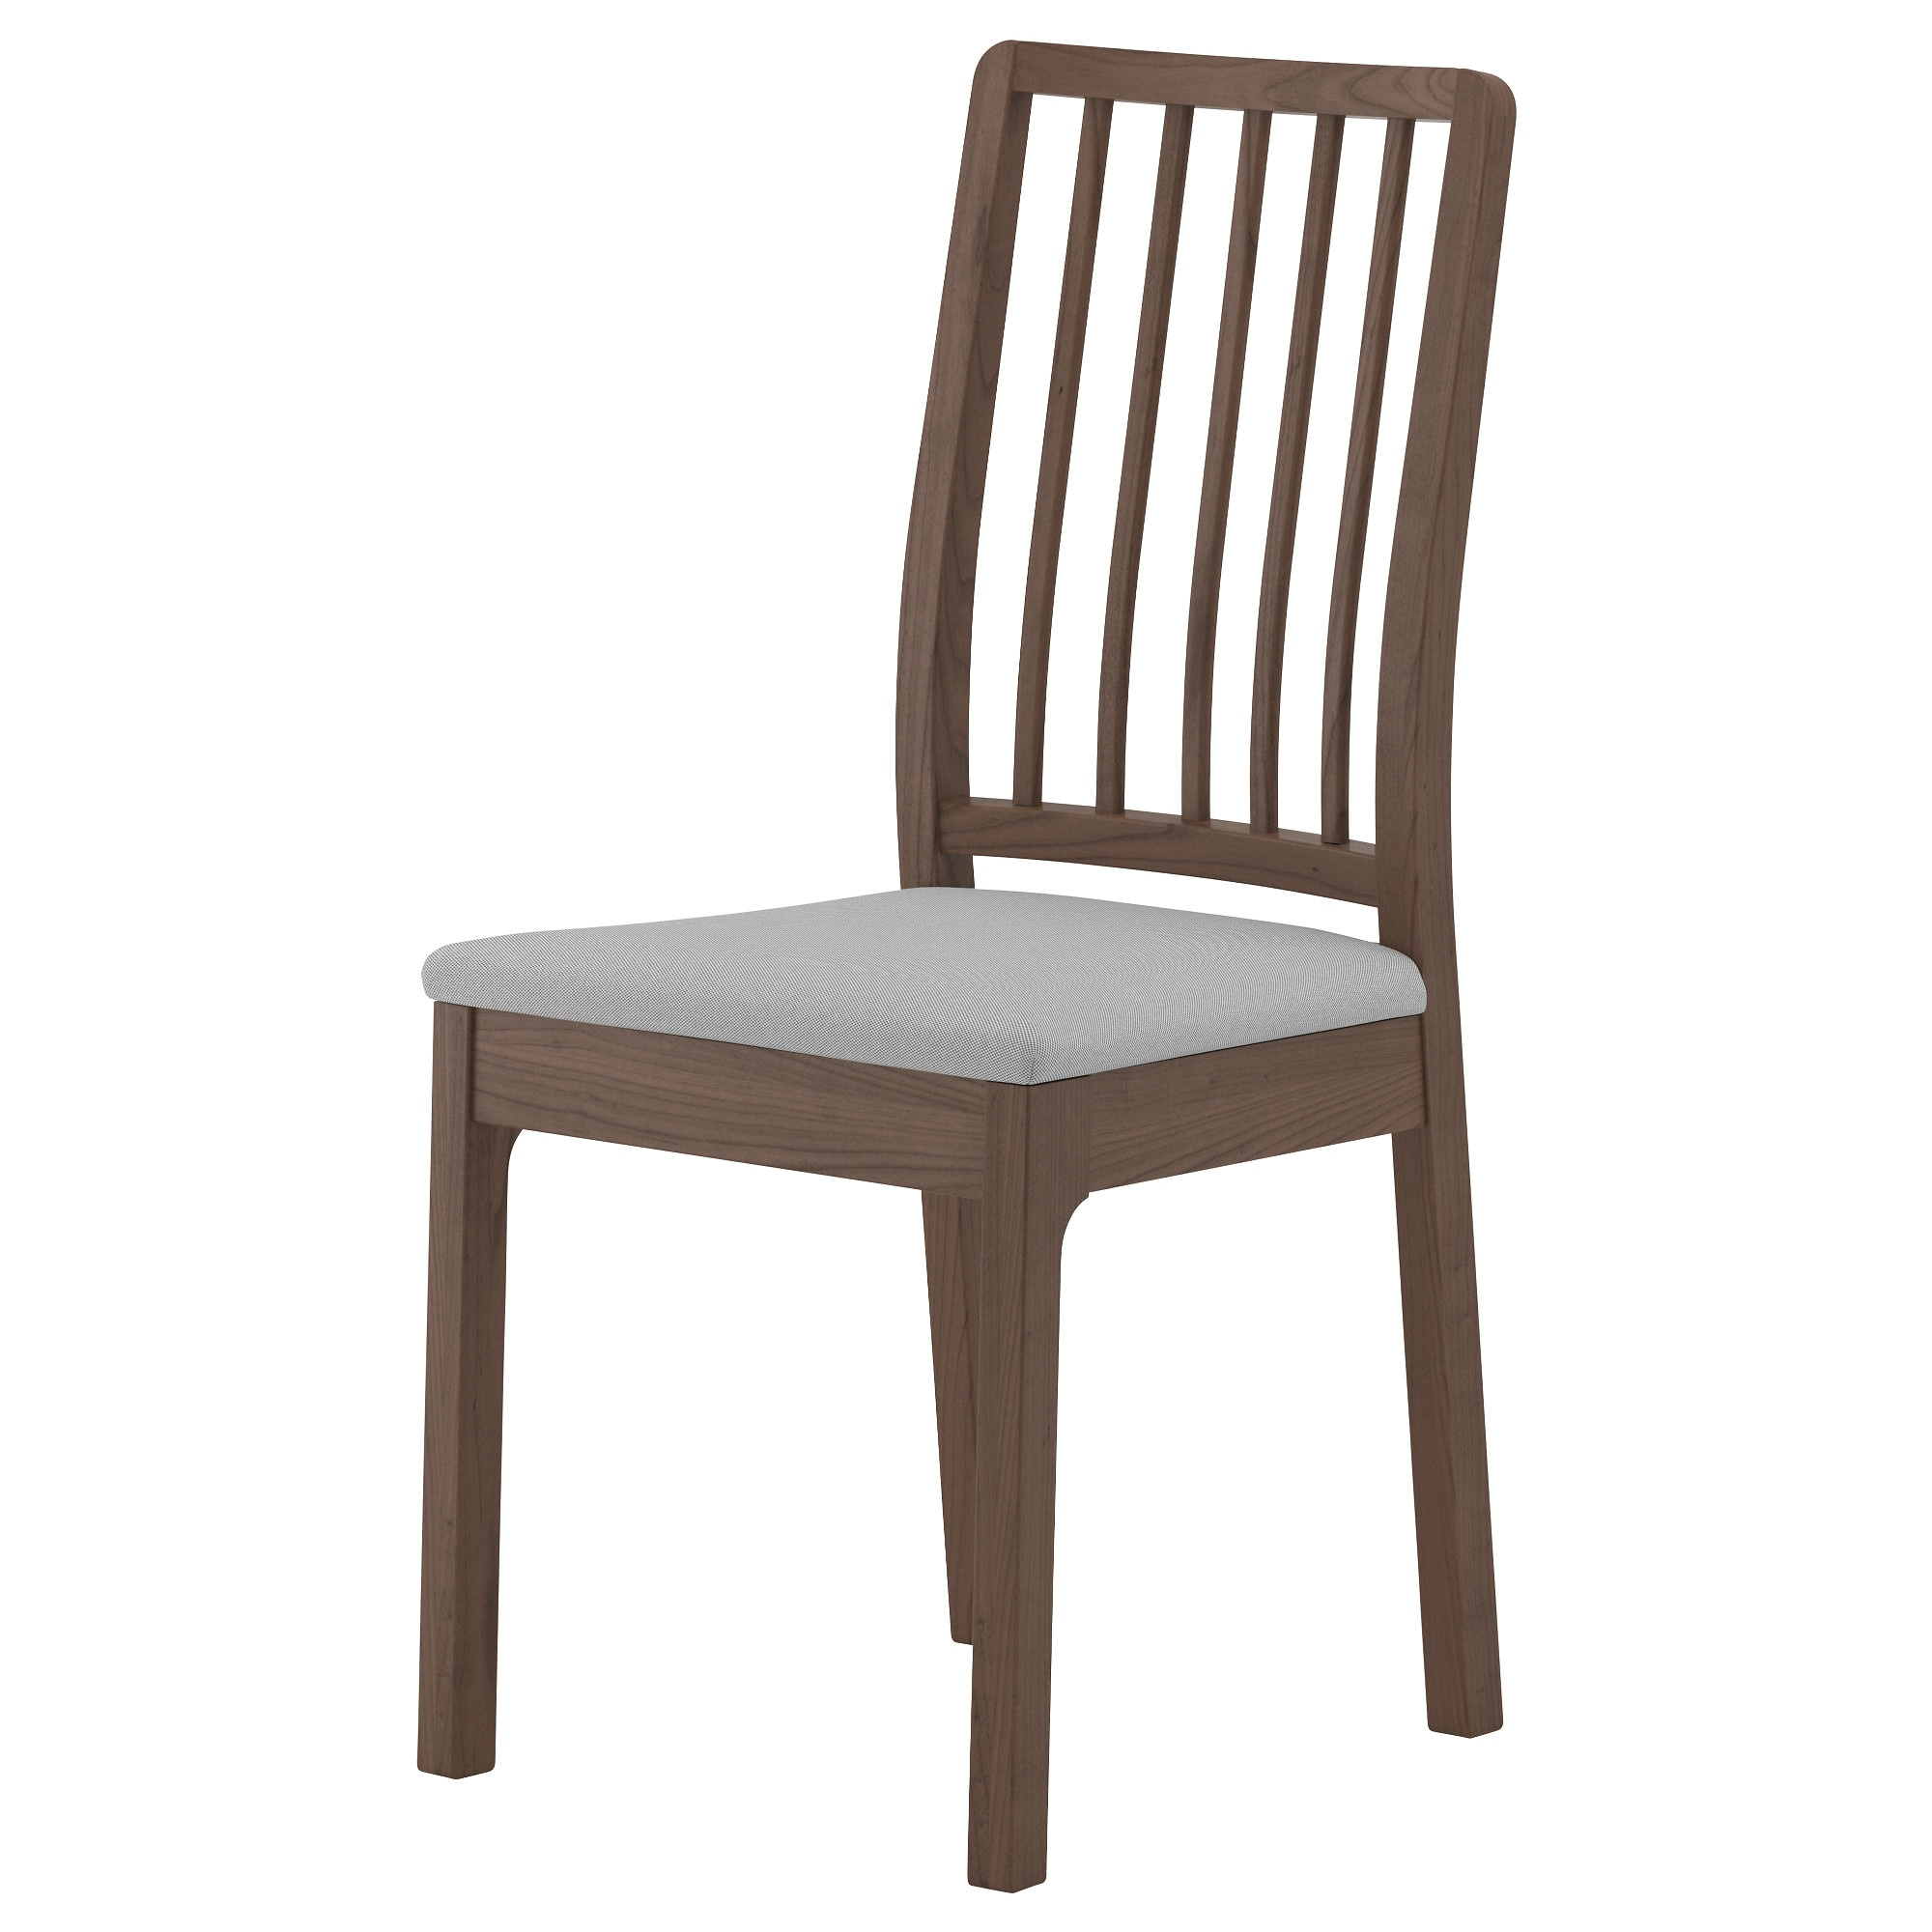 EKEDALEN Chair, Brown, Orrsta Light Gray Tested For: 243 Lb Width: 16